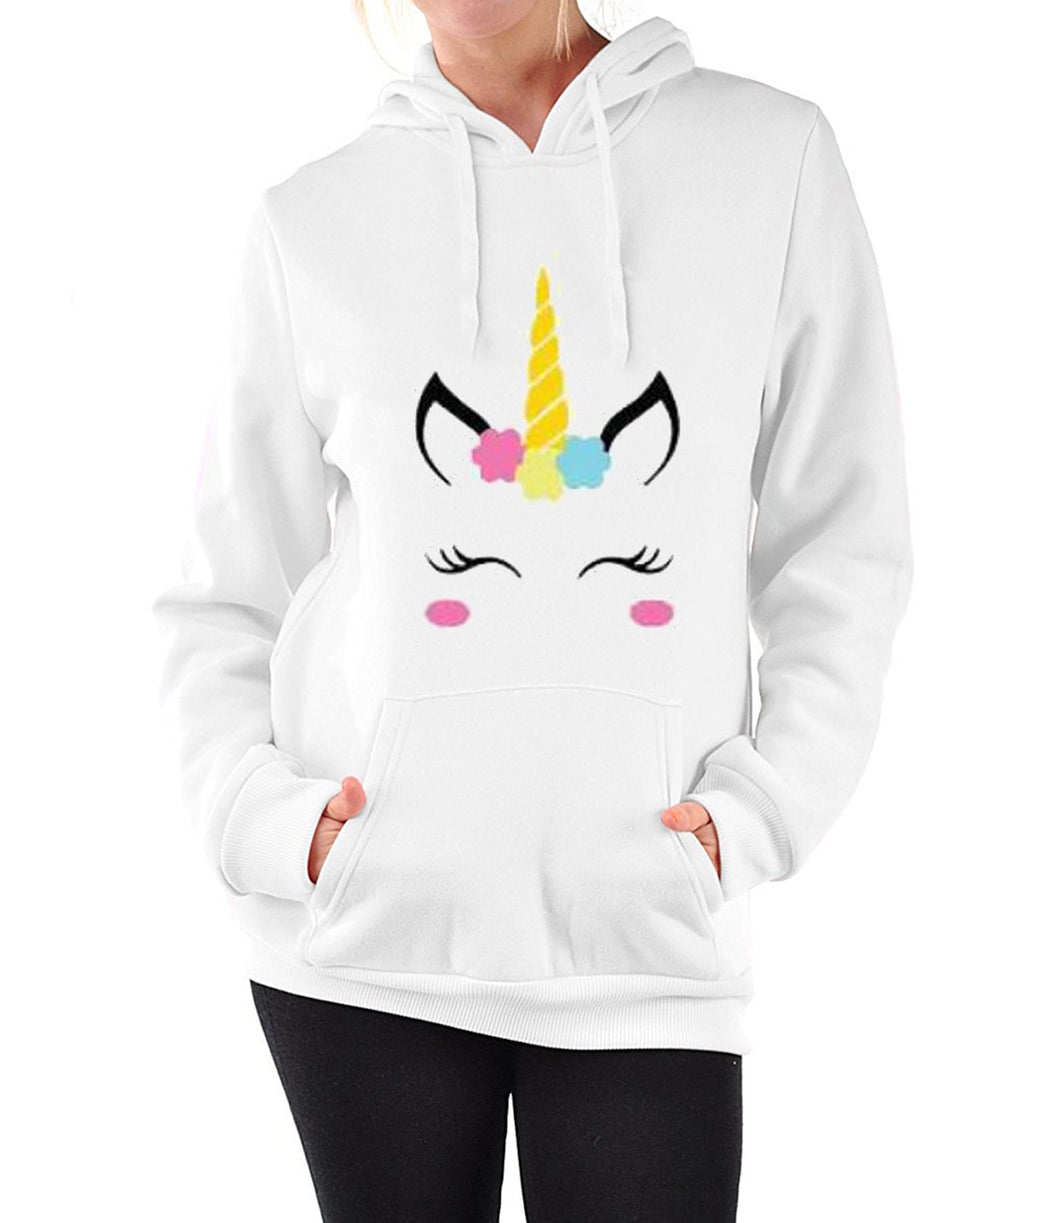 White Hoodies Women Unicorn Hoodie Sweatshirt